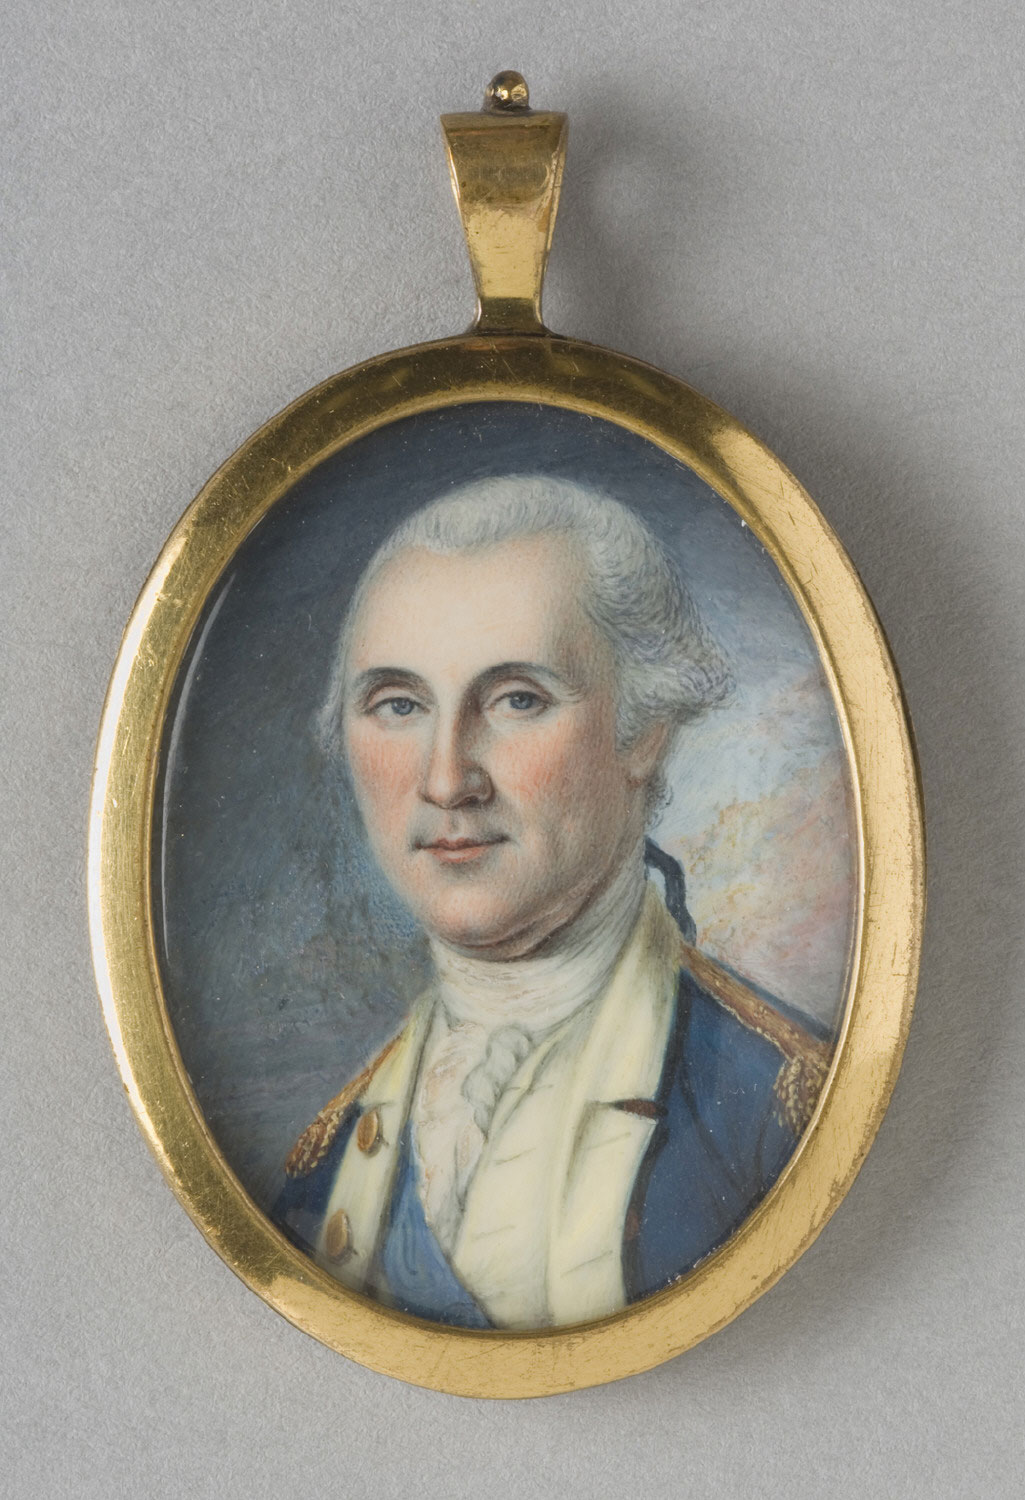 General George Washington, after Charles Willson Peale